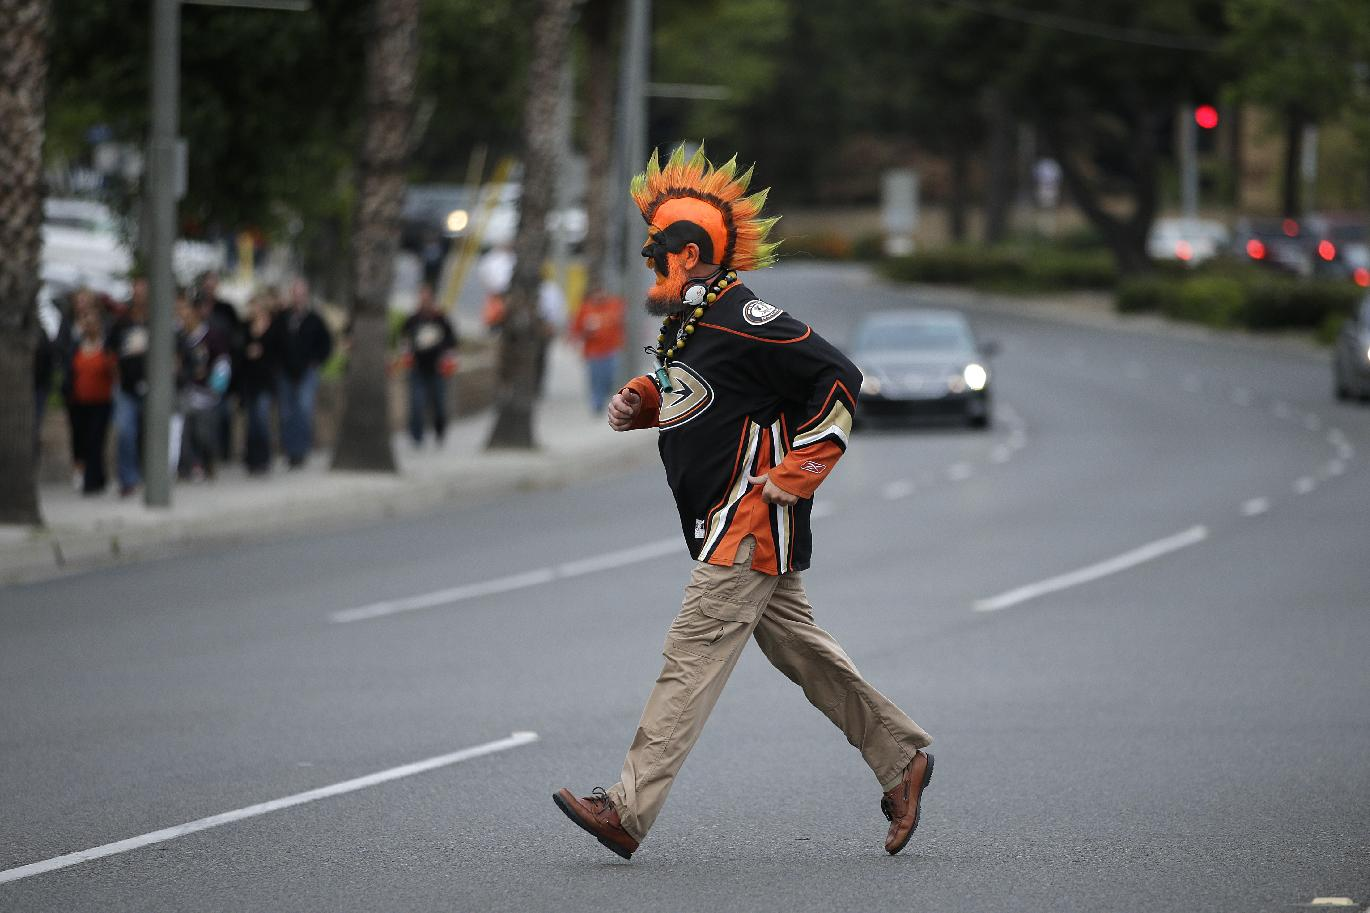 Anaheim Ducks fan Steve Markusic walks across the street on his way to Honda Center  to watch Game 5 of the first-round NHL hockey Stanley Cup playoff series between the Anaheim Ducks and the Dallas Stars on Friday, April 25, 2014, in Anaheim, Calif